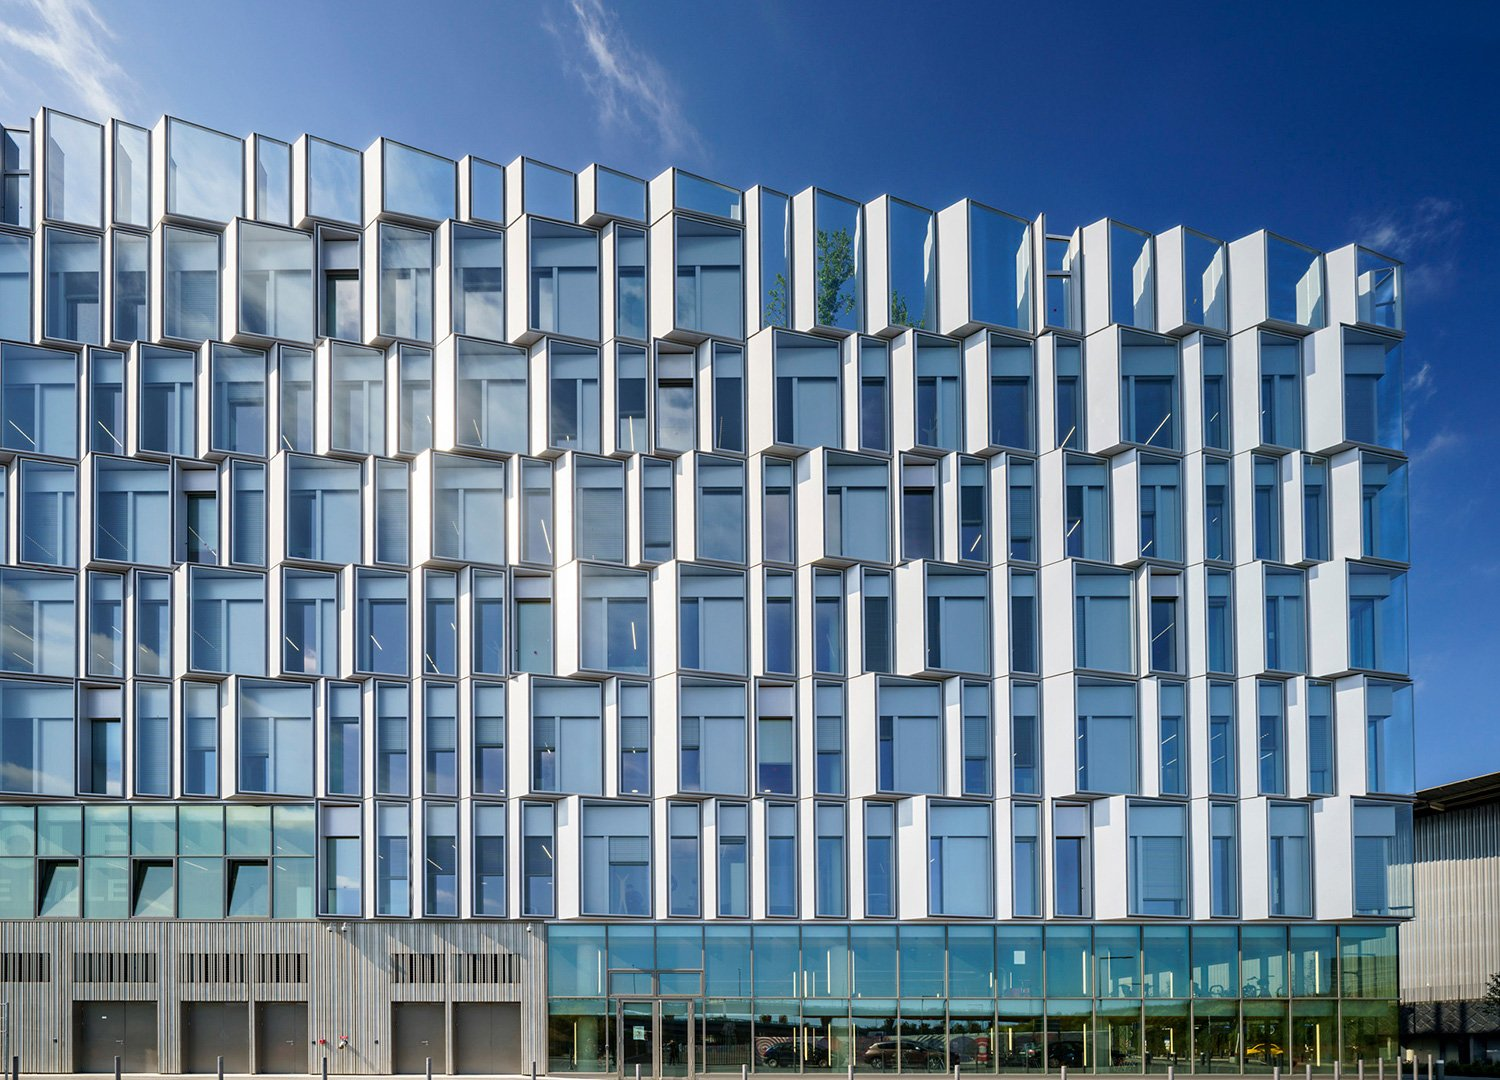 The glimmering double skin façade regulates the indoor climate and reduces reliance on climate control systems © Javier Callejas Sevilla